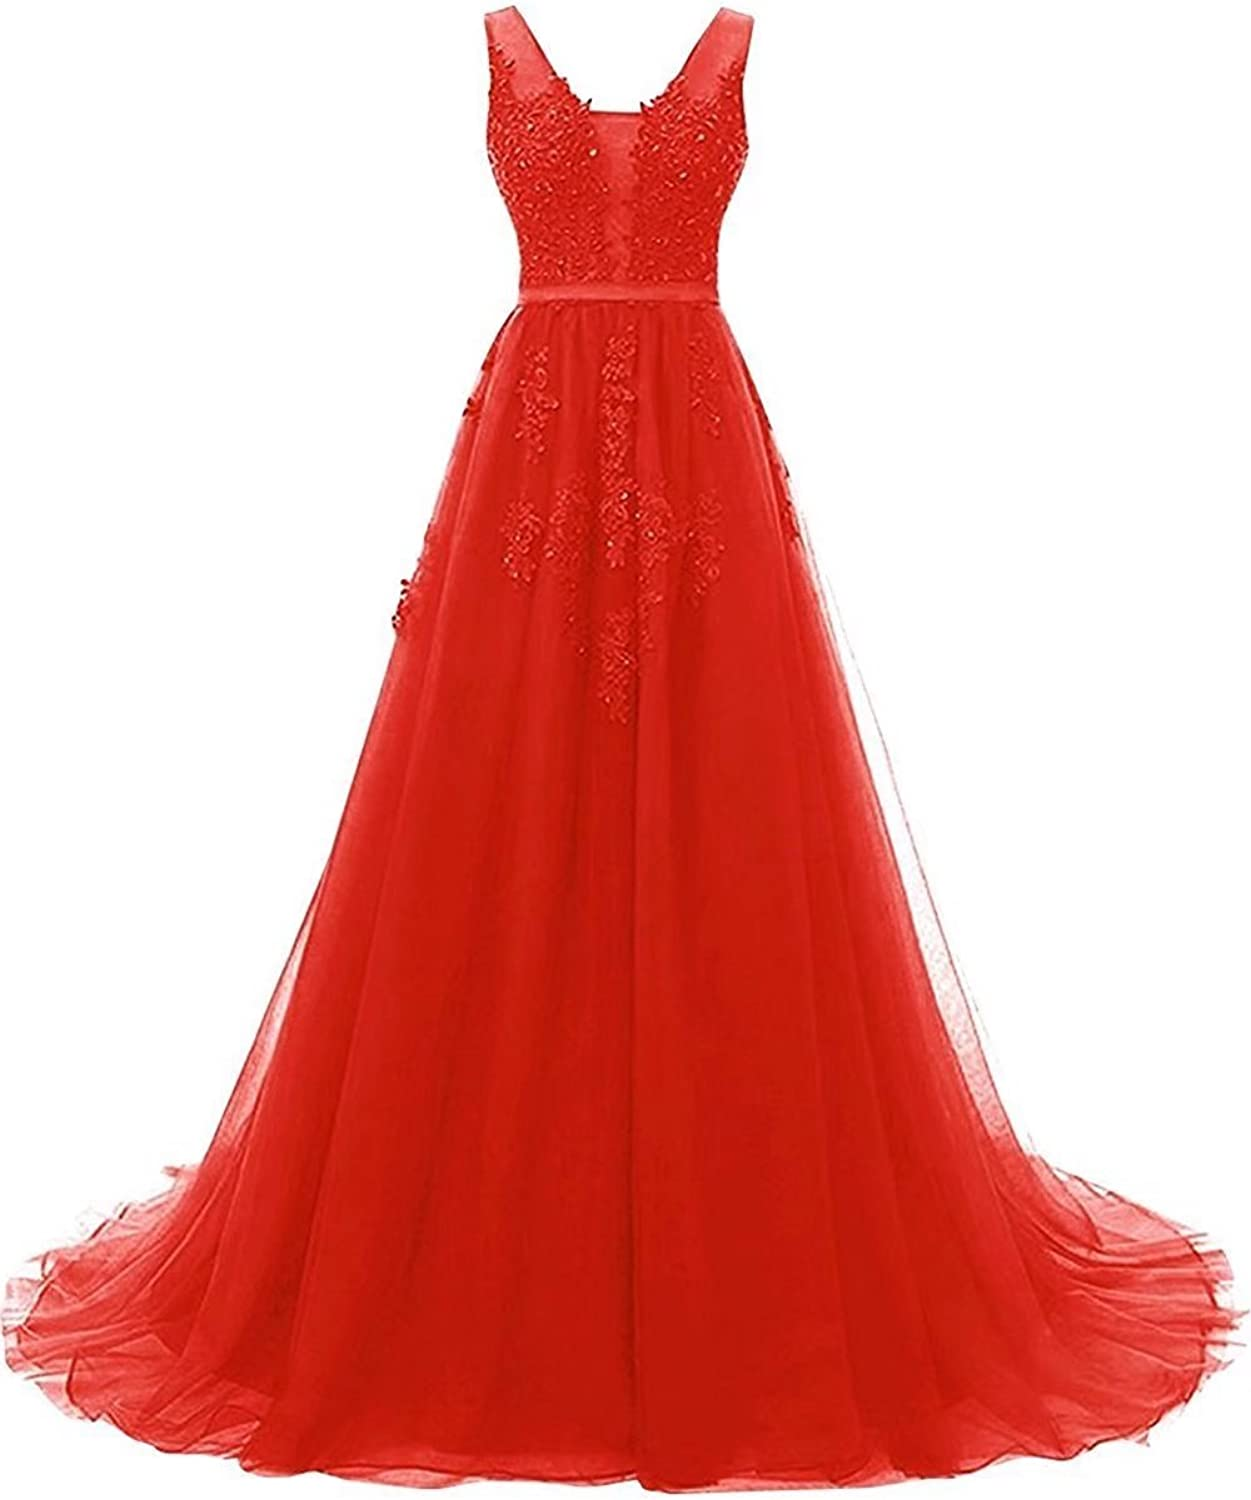 YOUTODRESS Women's VNeck Tulle Bridesmaid Dress for Evening Wedding Gowns Lace Appliques